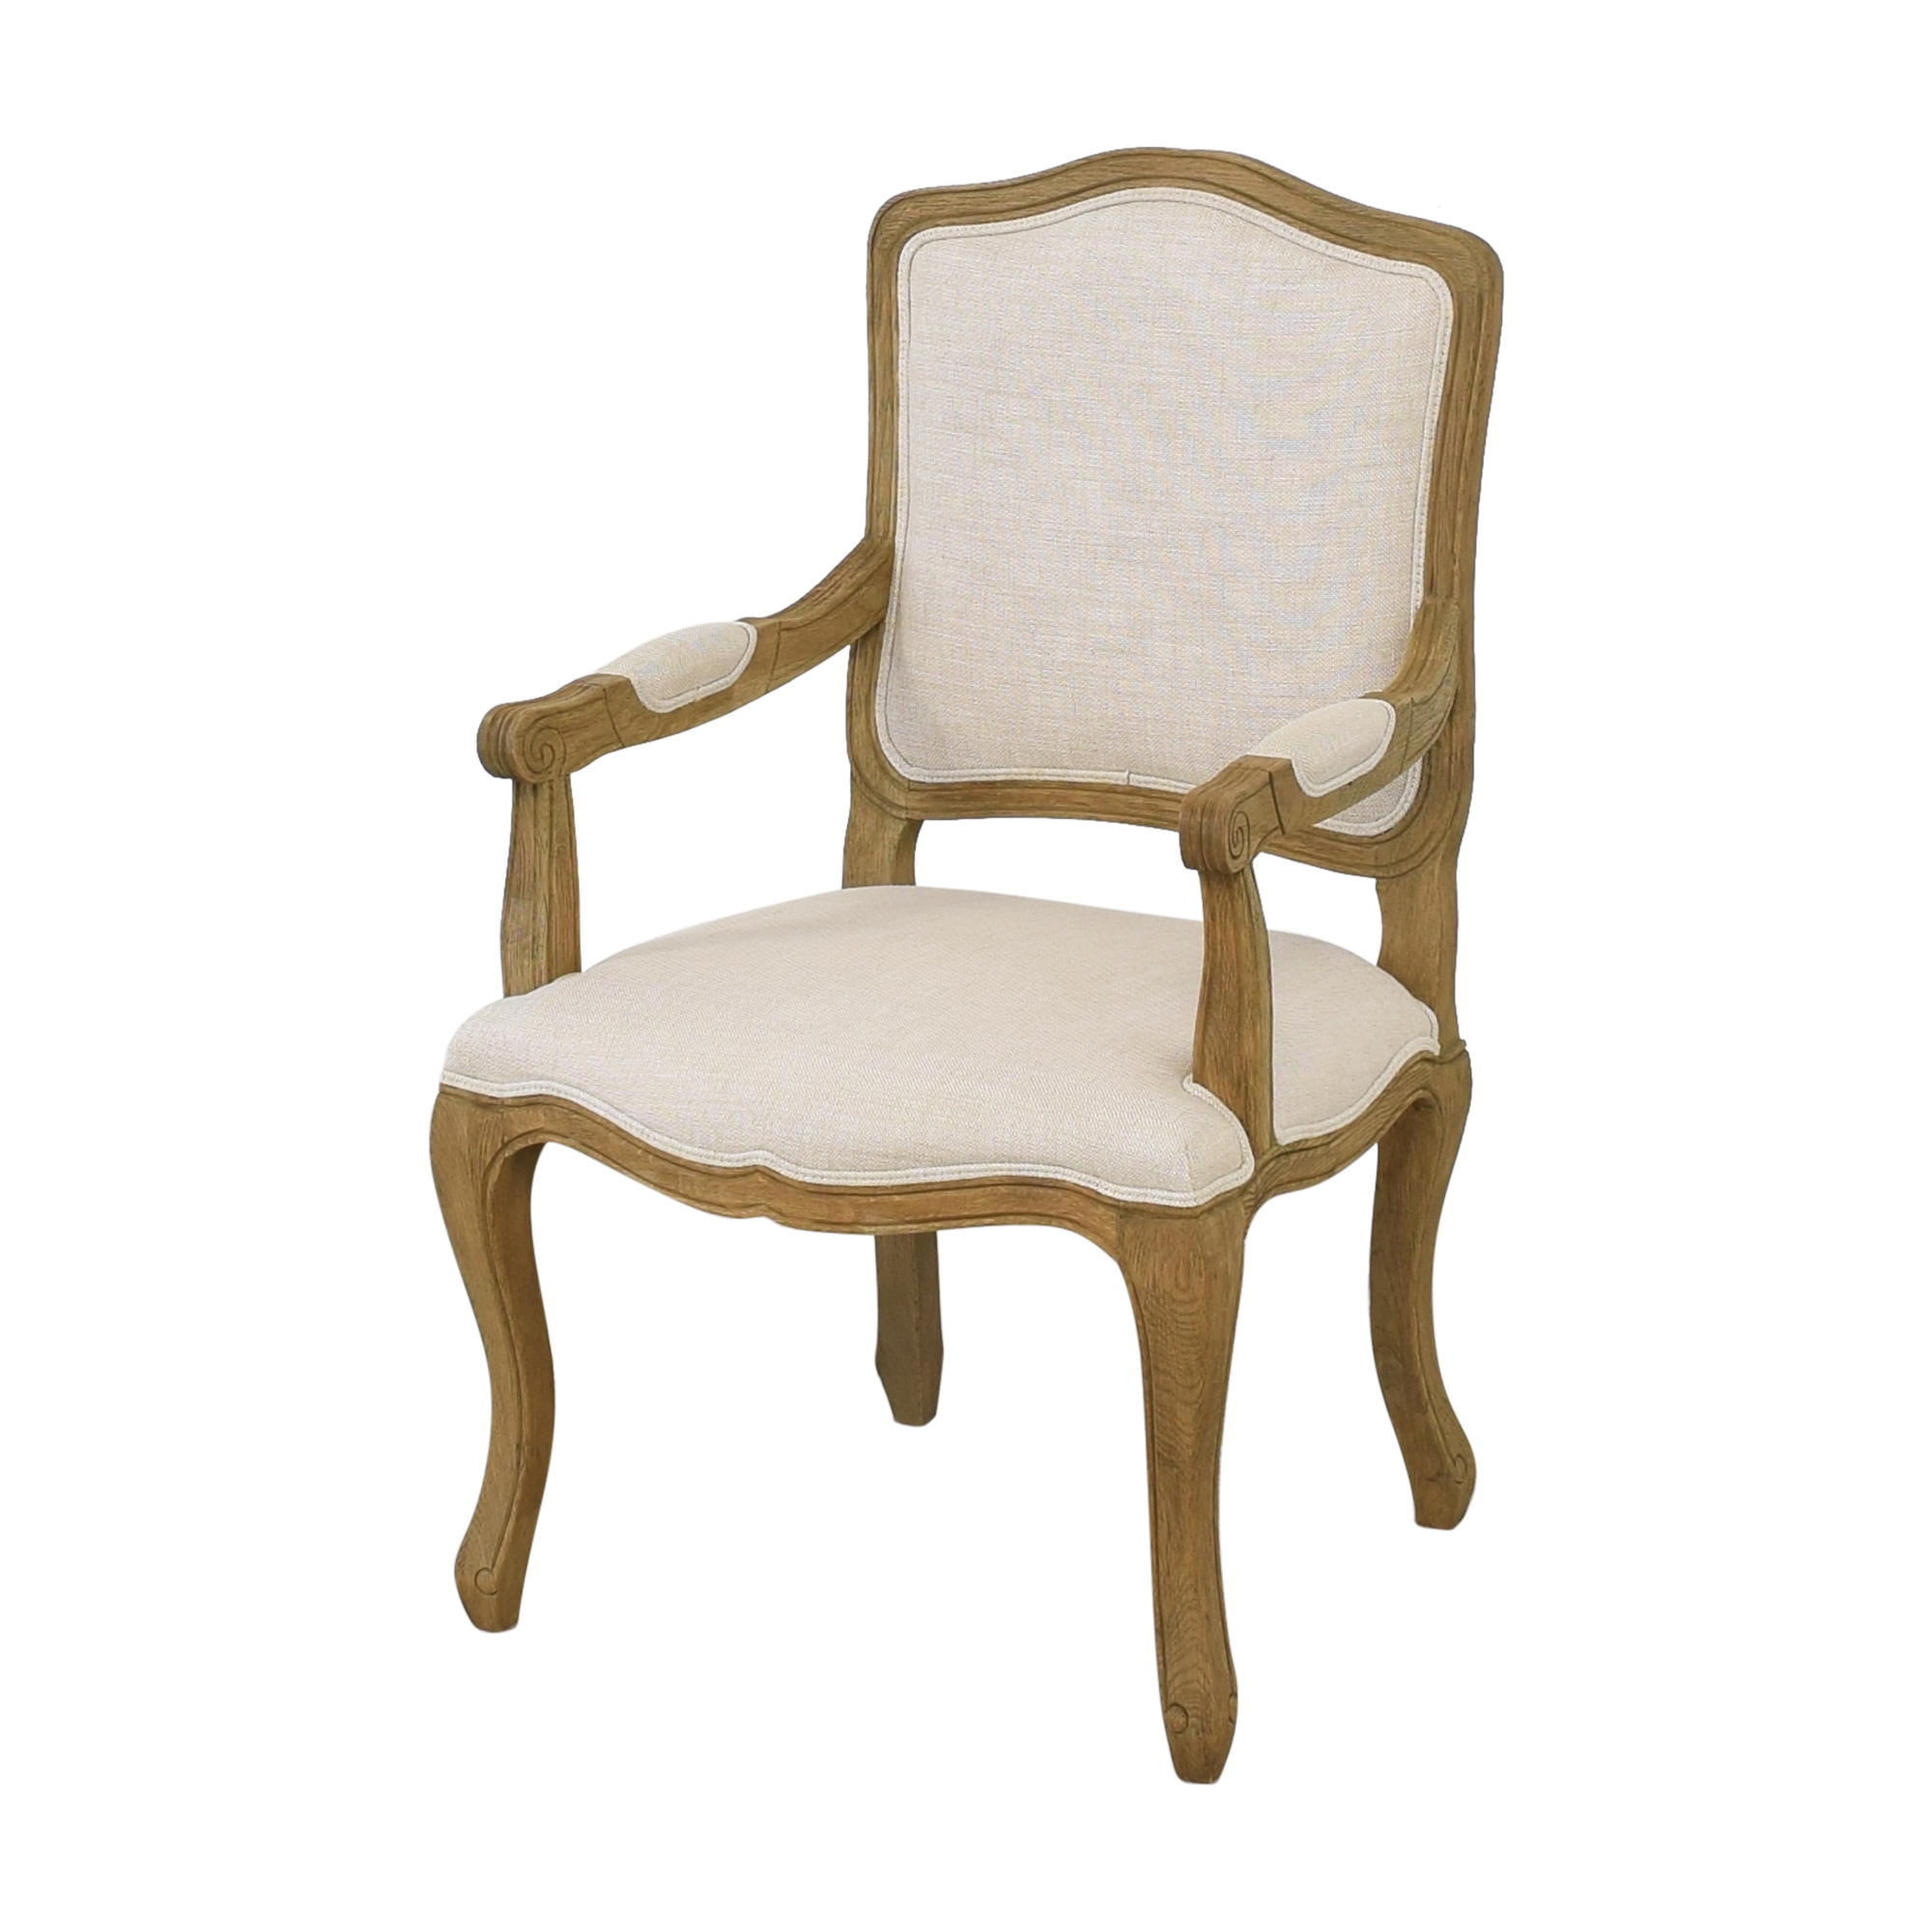 Restoration Hardware Restoration Hardware Vintage French Camelback Fabric Armchair discount